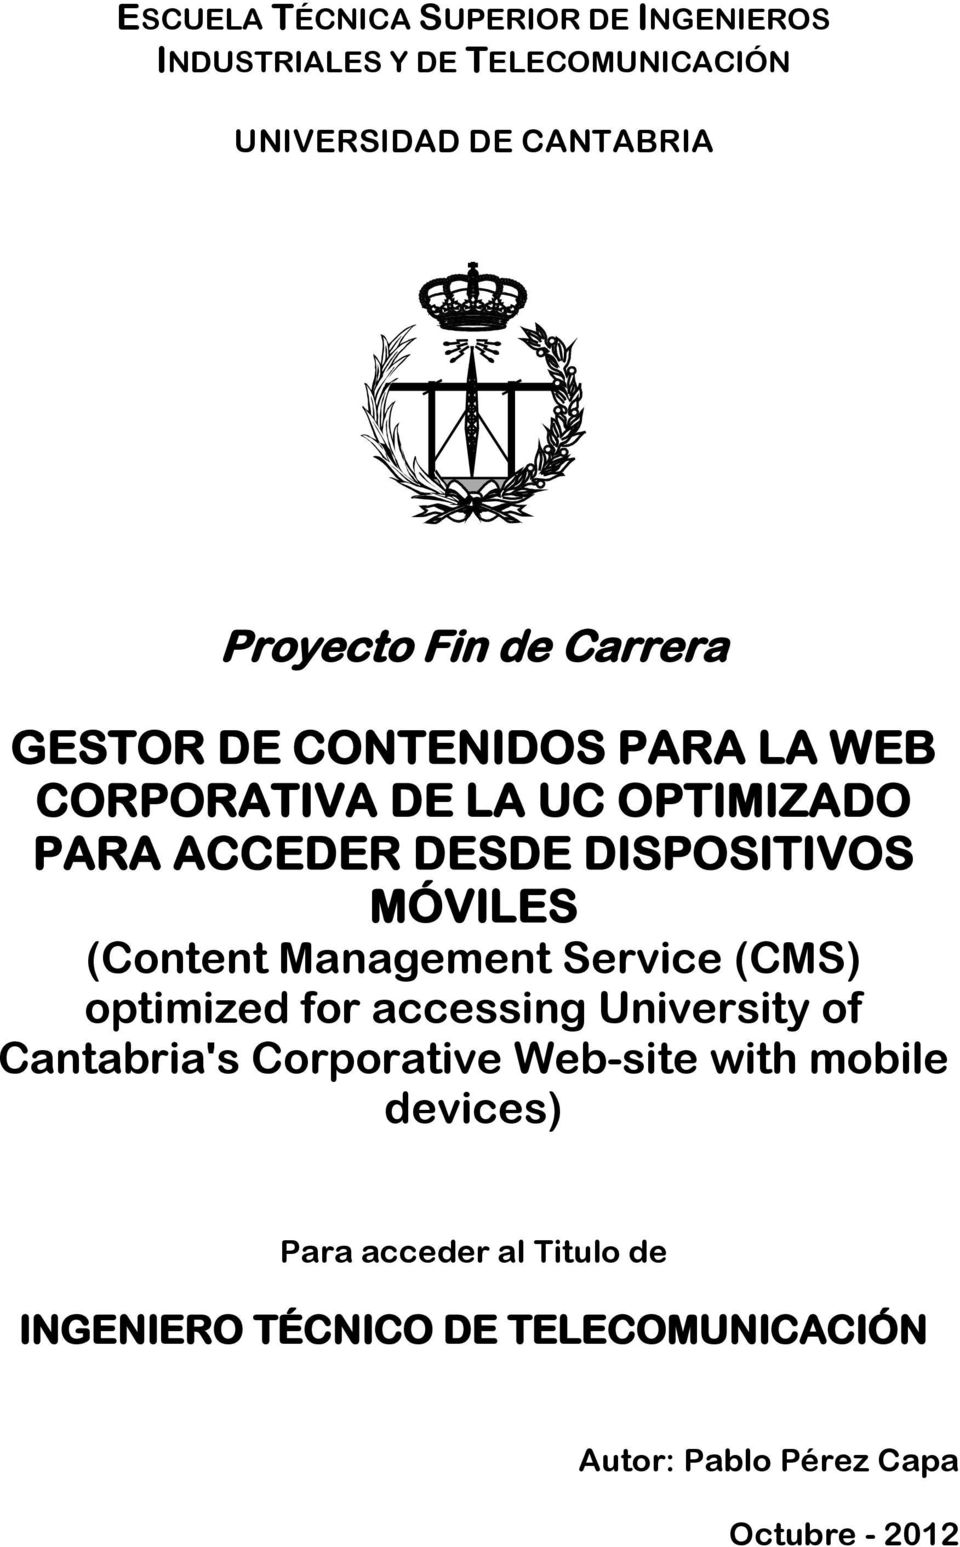 MÓVILES (Content Management Service (CMS) optimized for accessing University of Cantabria's Corporative Web-site